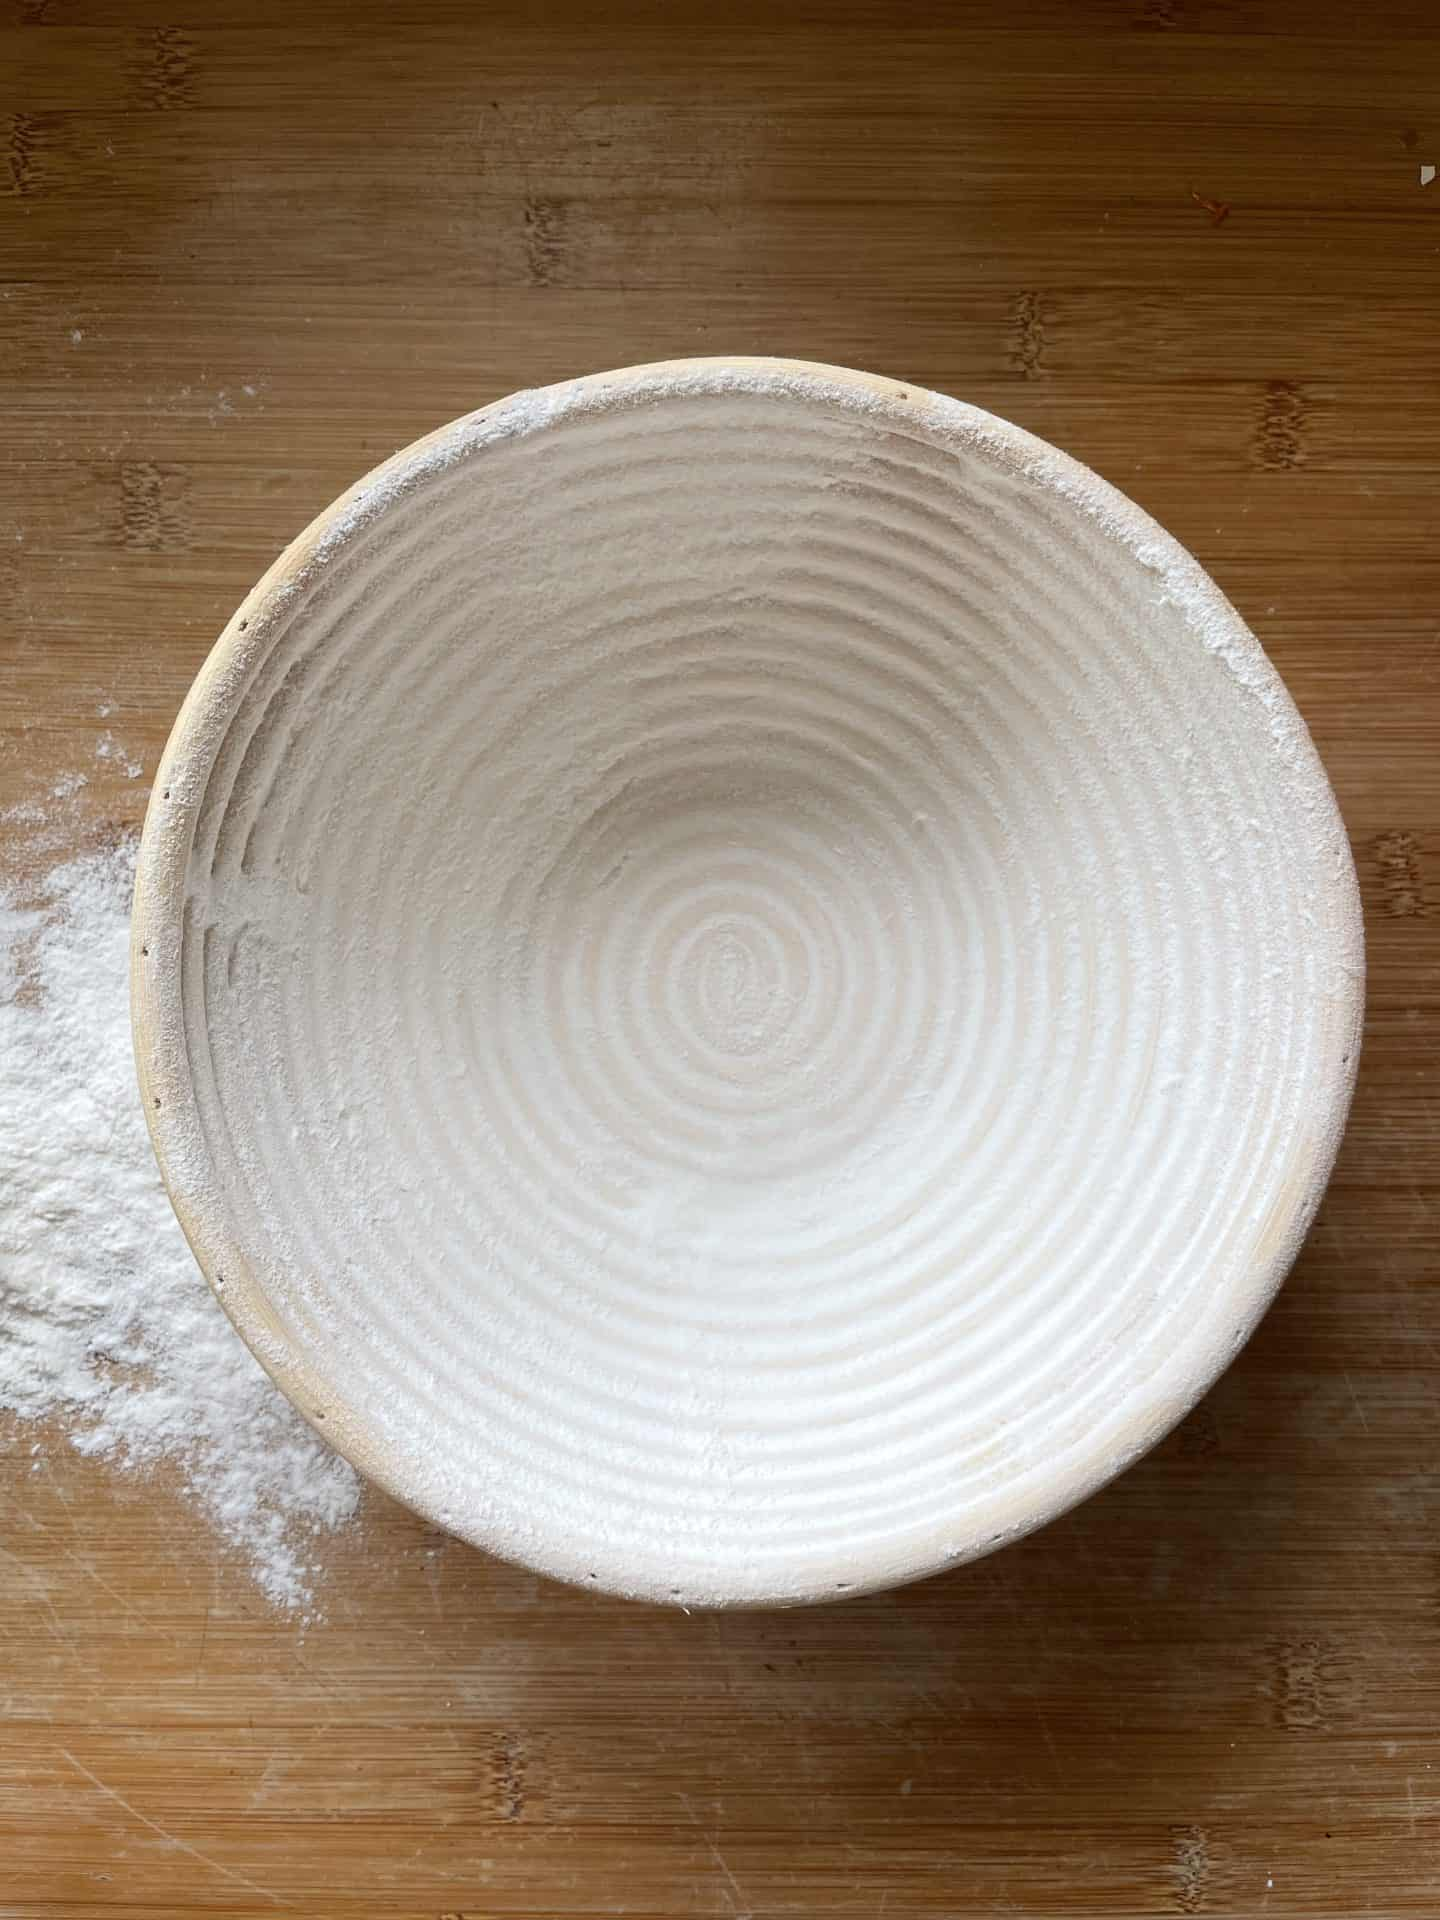 how to flour a bread banneton to stop it sticking